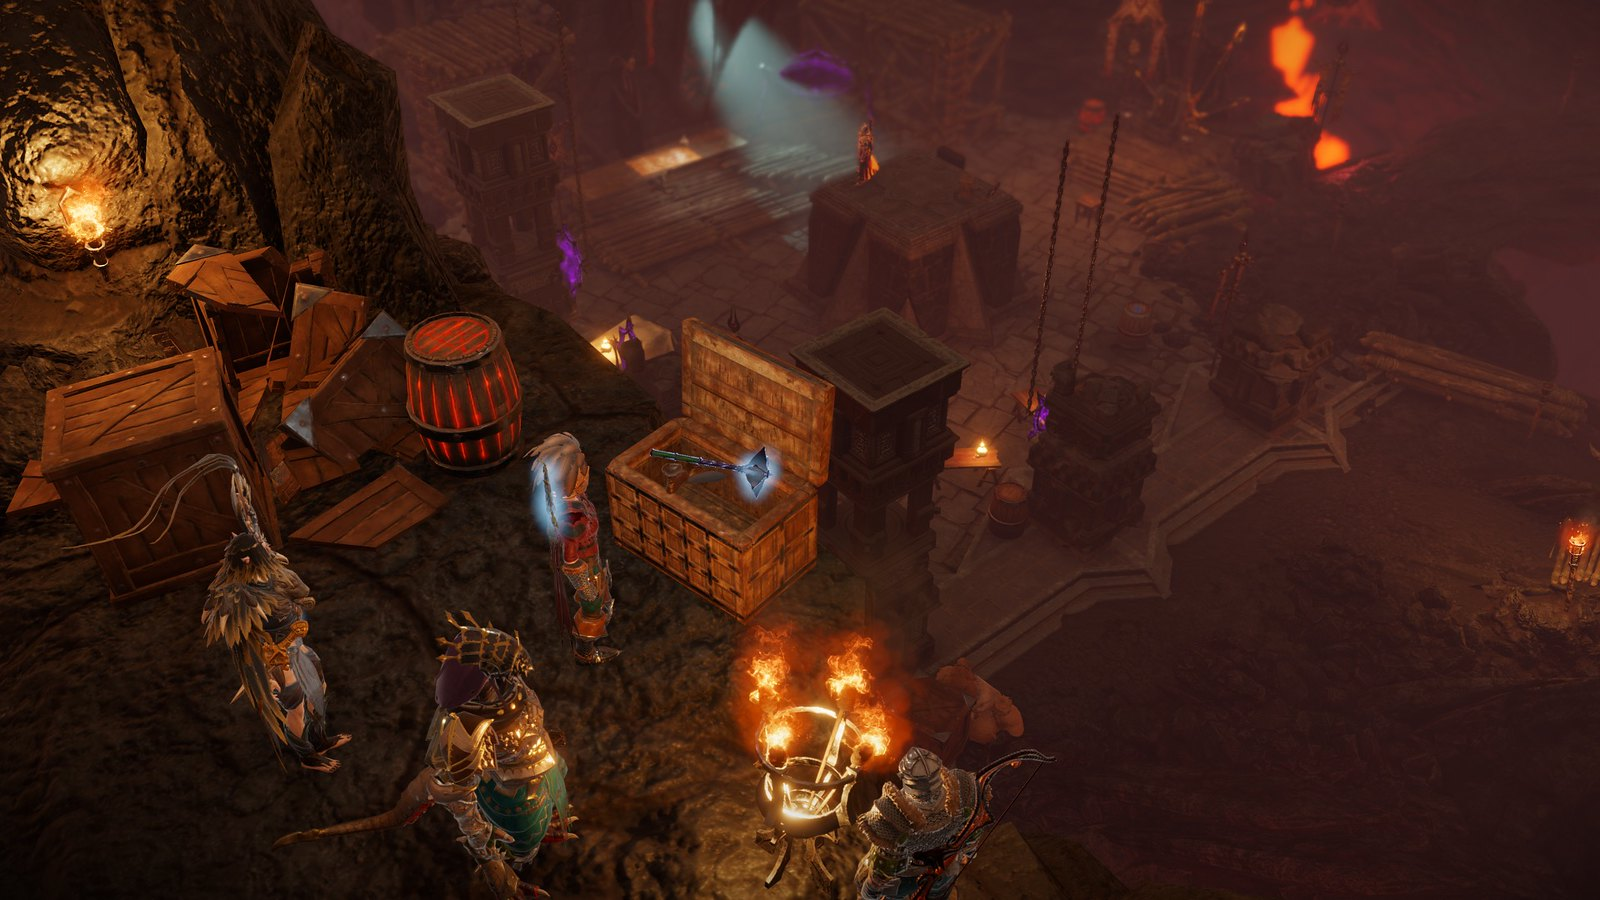 Pre-order critically-acclaimed RPG Divinity: Original Sin 2 on PS4